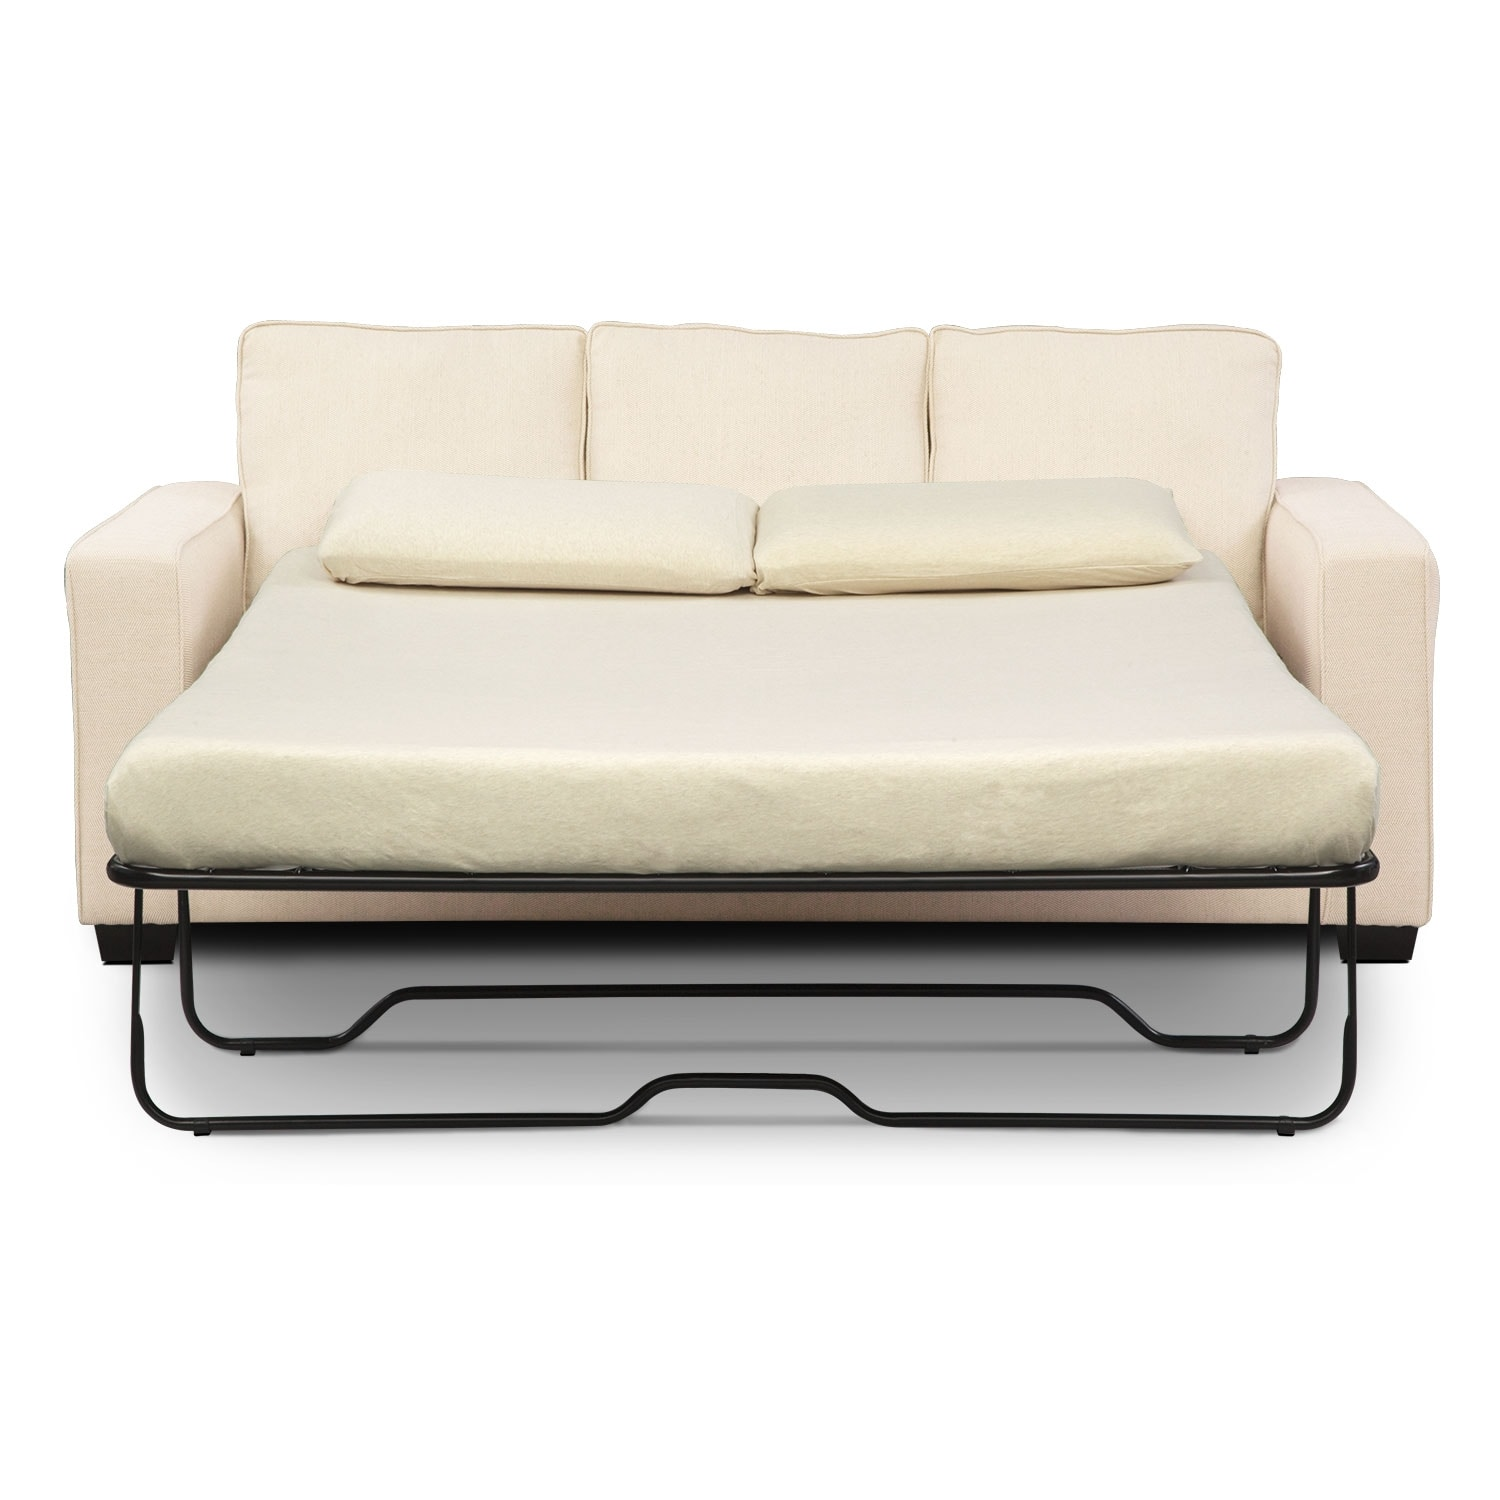 Sterling innerspring sleeper sofa with chaise beige for Apartment sofa chaise